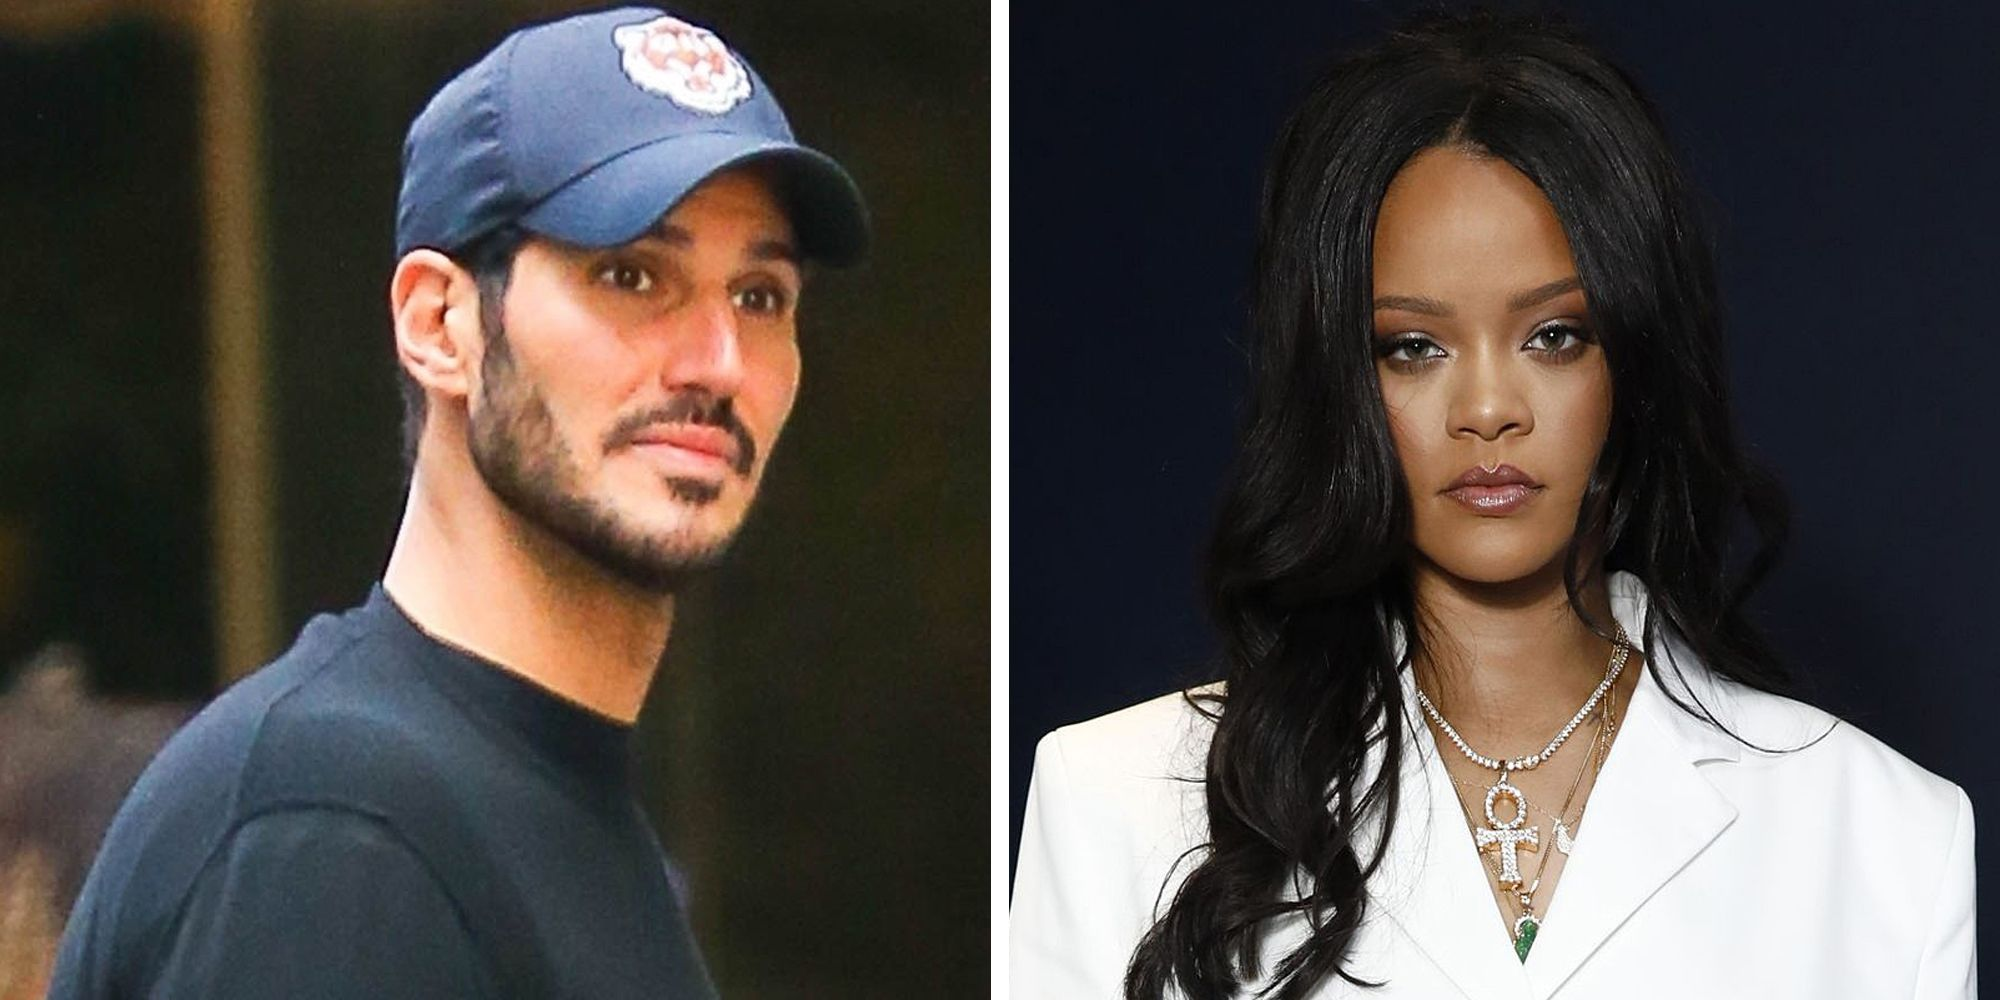 Rihanna and Boyfriend Hassan Jameel Have Reportedly Broken Up After Almost Three Years Together